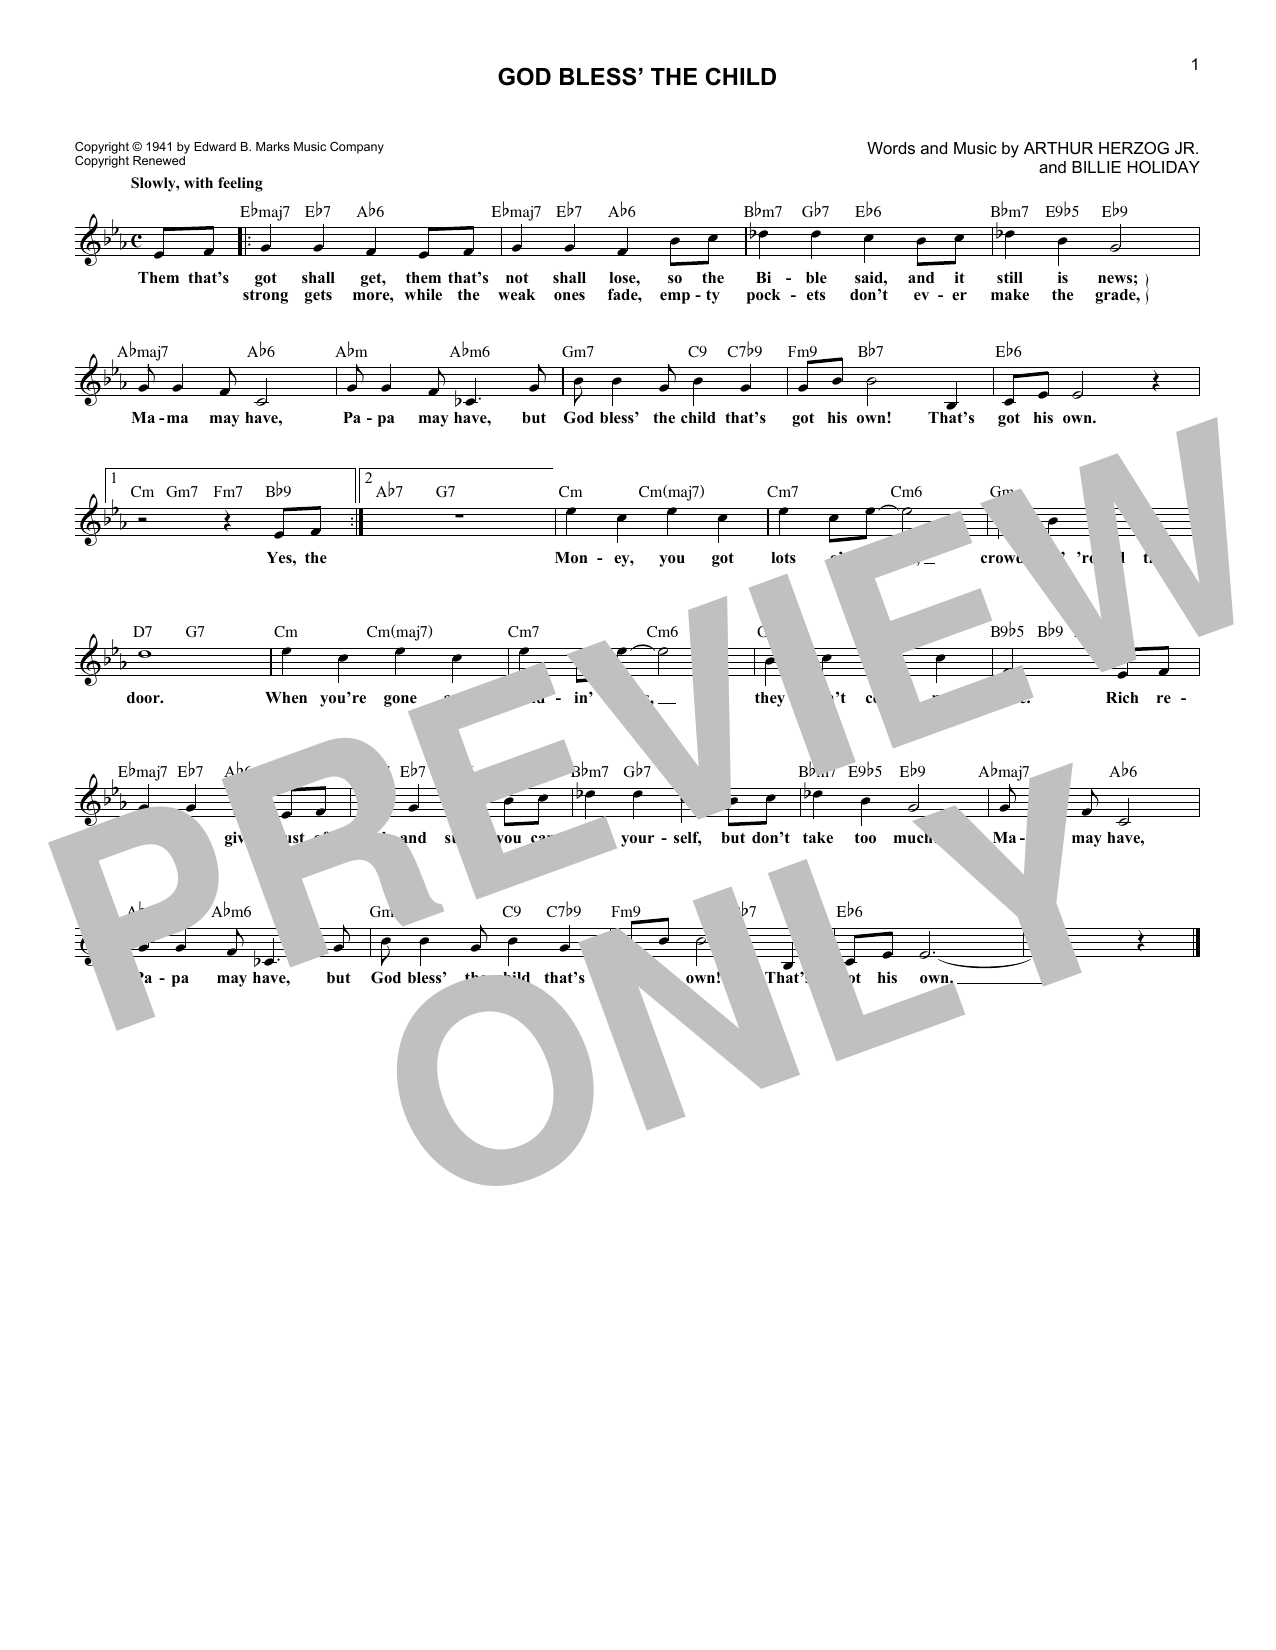 Download Arthur Herzog Jr. 'God Bless' The Child' Digital Sheet Music Notes & Chords and start playing in minutes